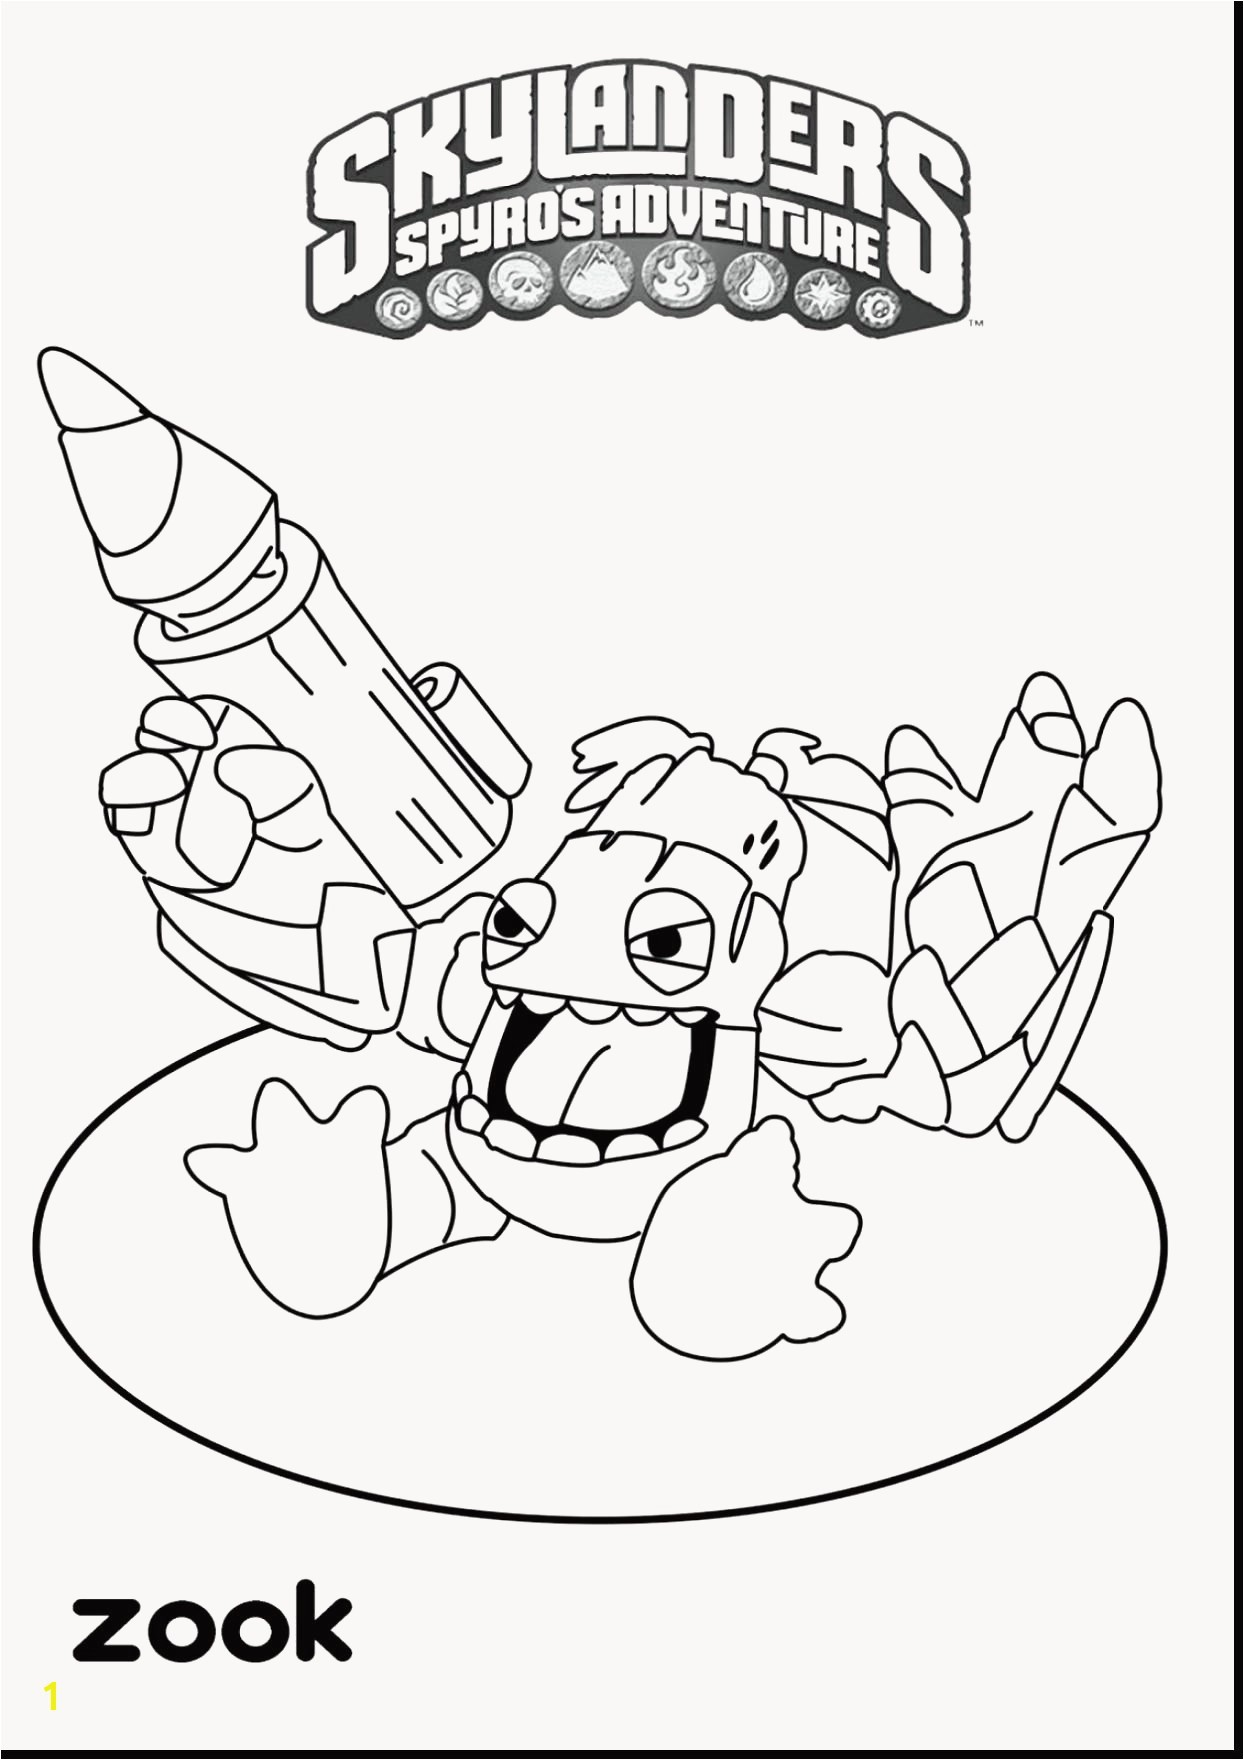 Star Wars Color Pages Unique Cool Coloring Page Unique Witch Coloring Pages New Crayola Pages 0d